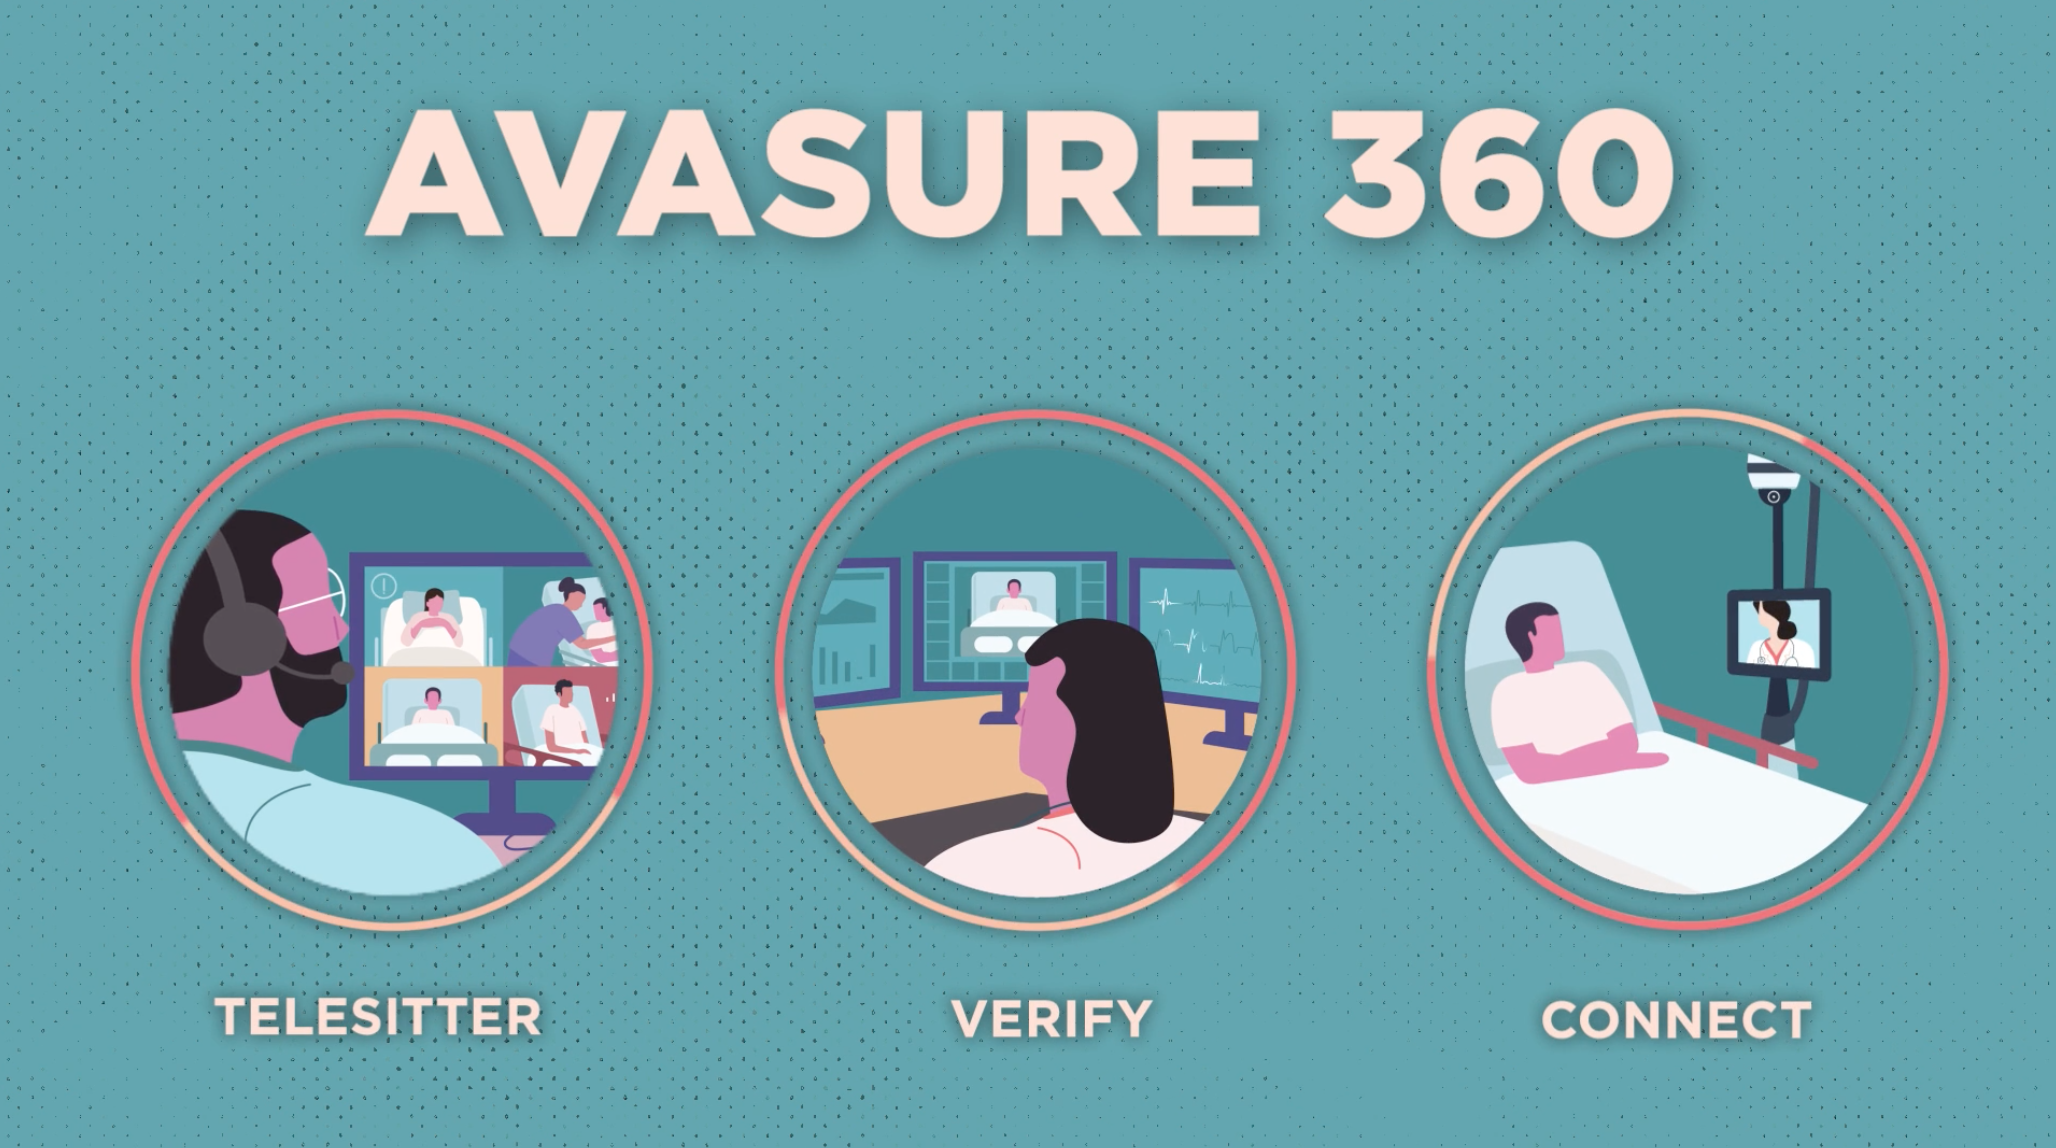 Introducing AvaSure 360: A Comprehensive Inpatient Telehealth Solution